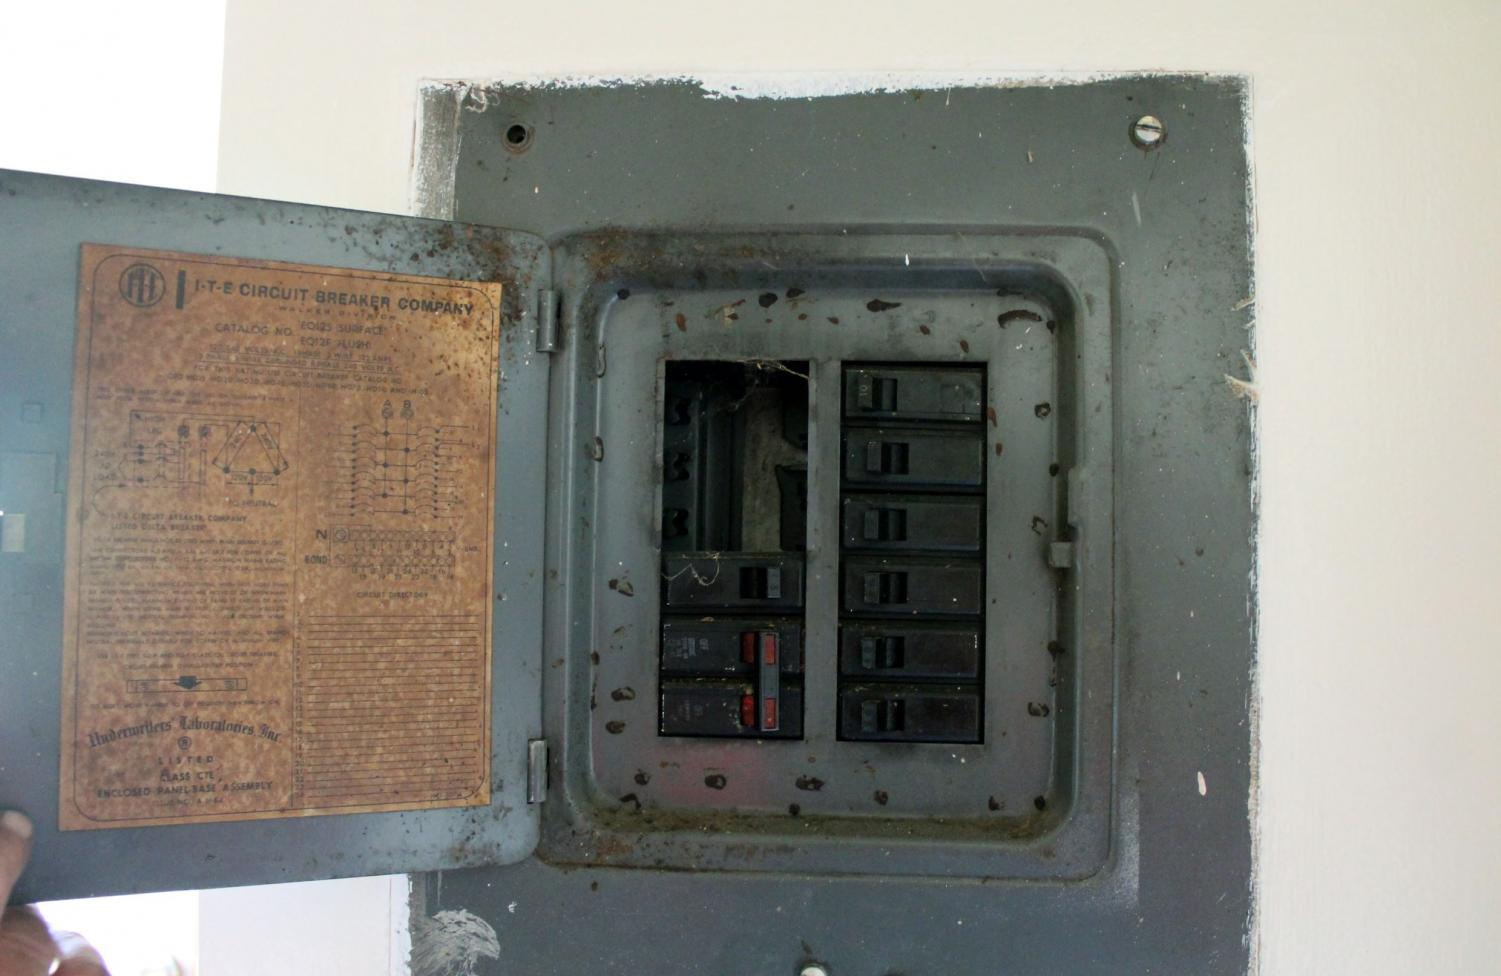 This is one of the many fuze boxes in the Yale Park Apartments that shows exposed wires which is a violation of city code. Photo by Dominick Bartels